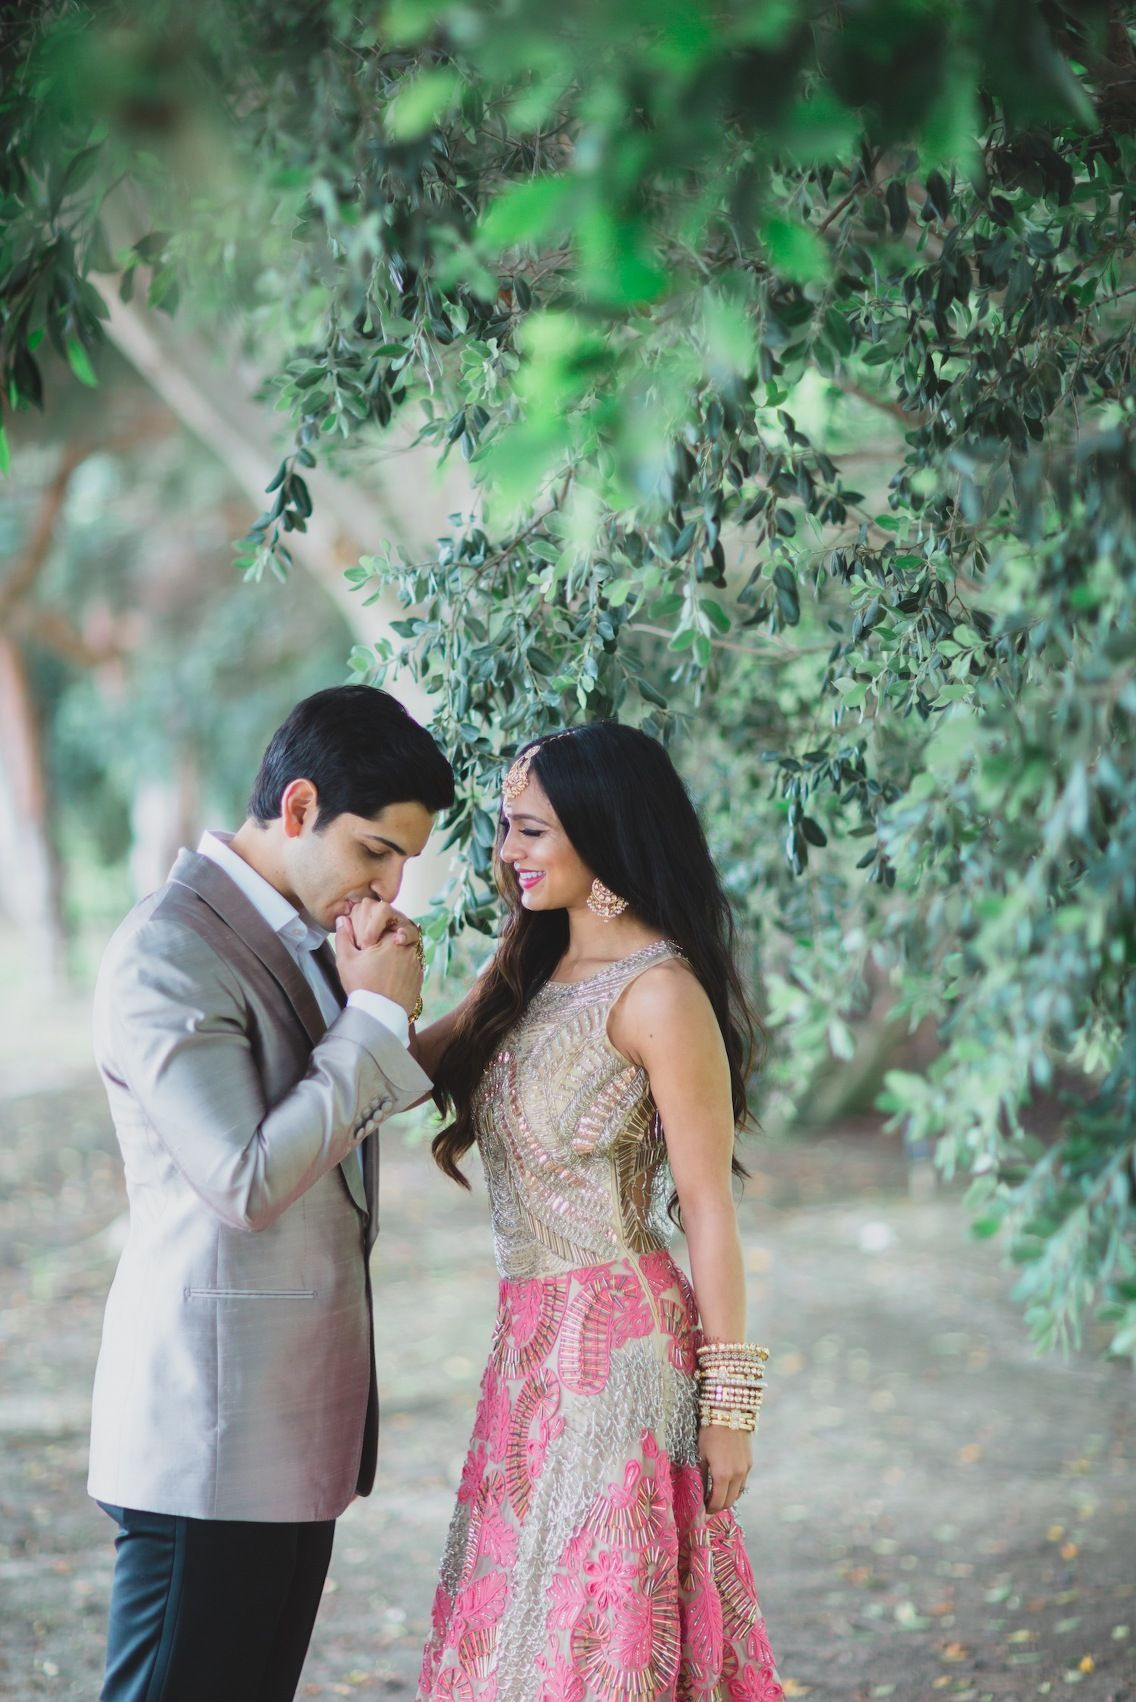 Jasmeet and anshuman wedding dress